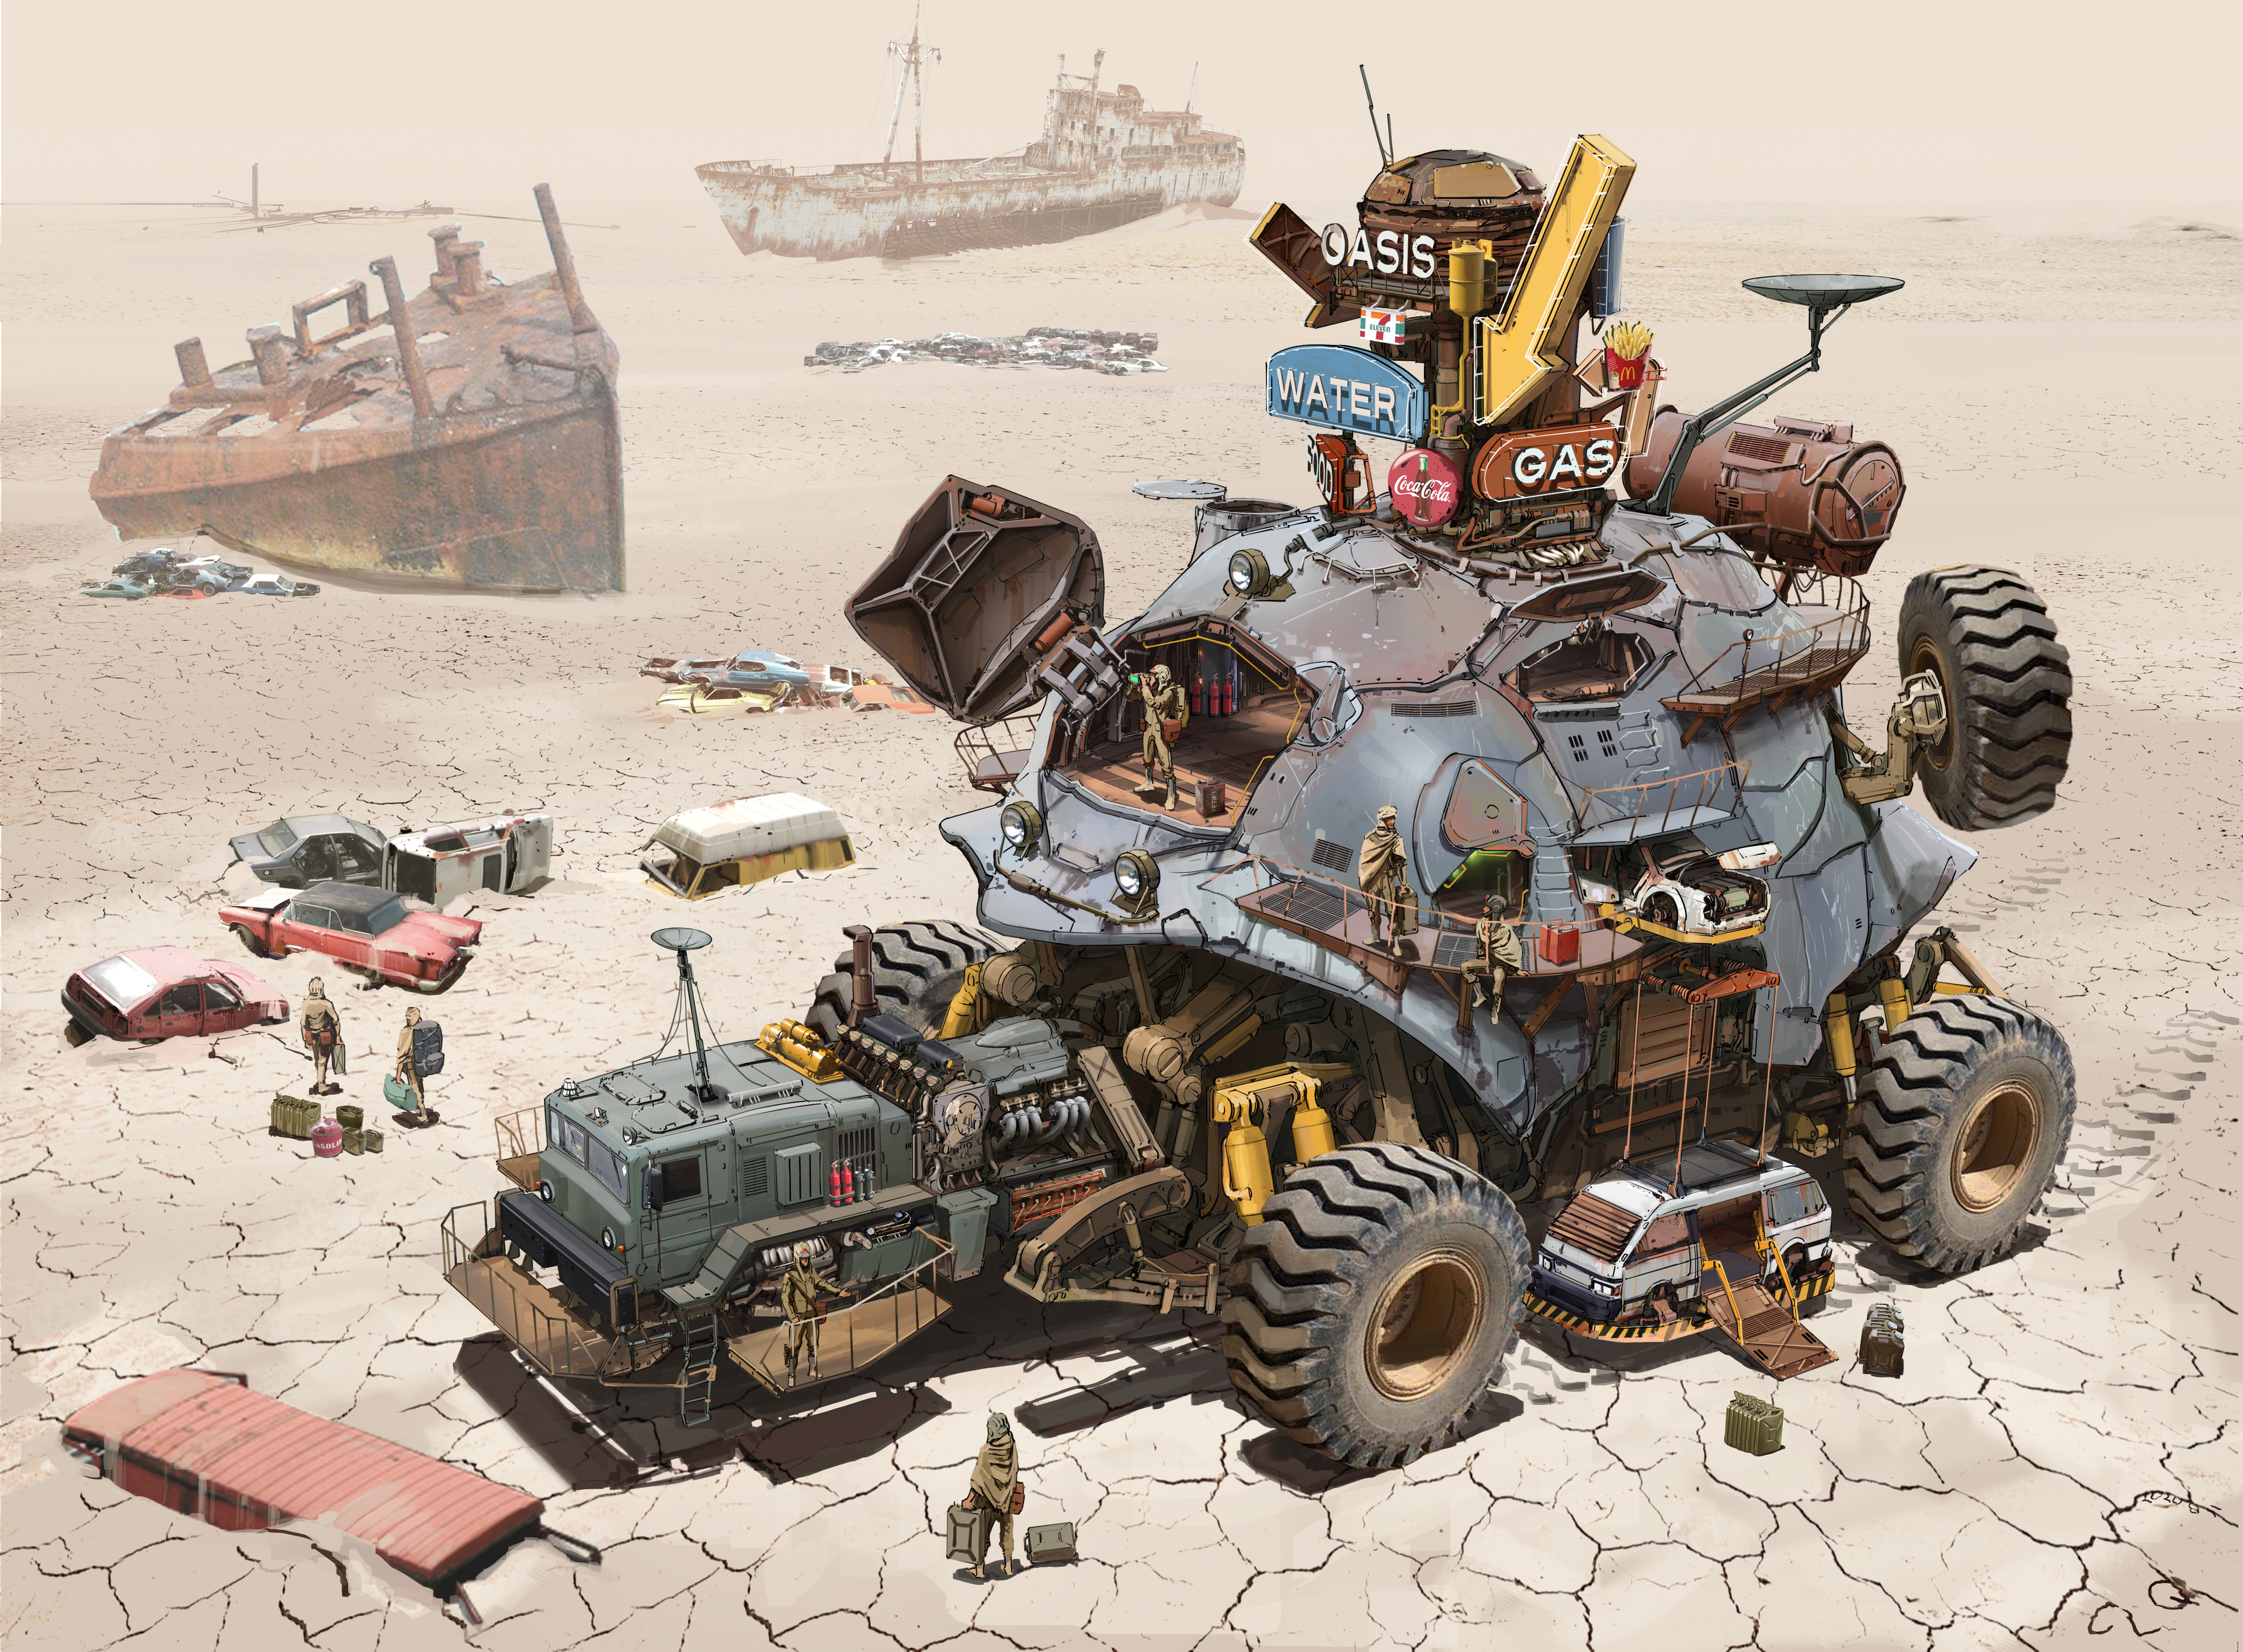 longque-chen-turtle-gas-station-in-action-9.jpg